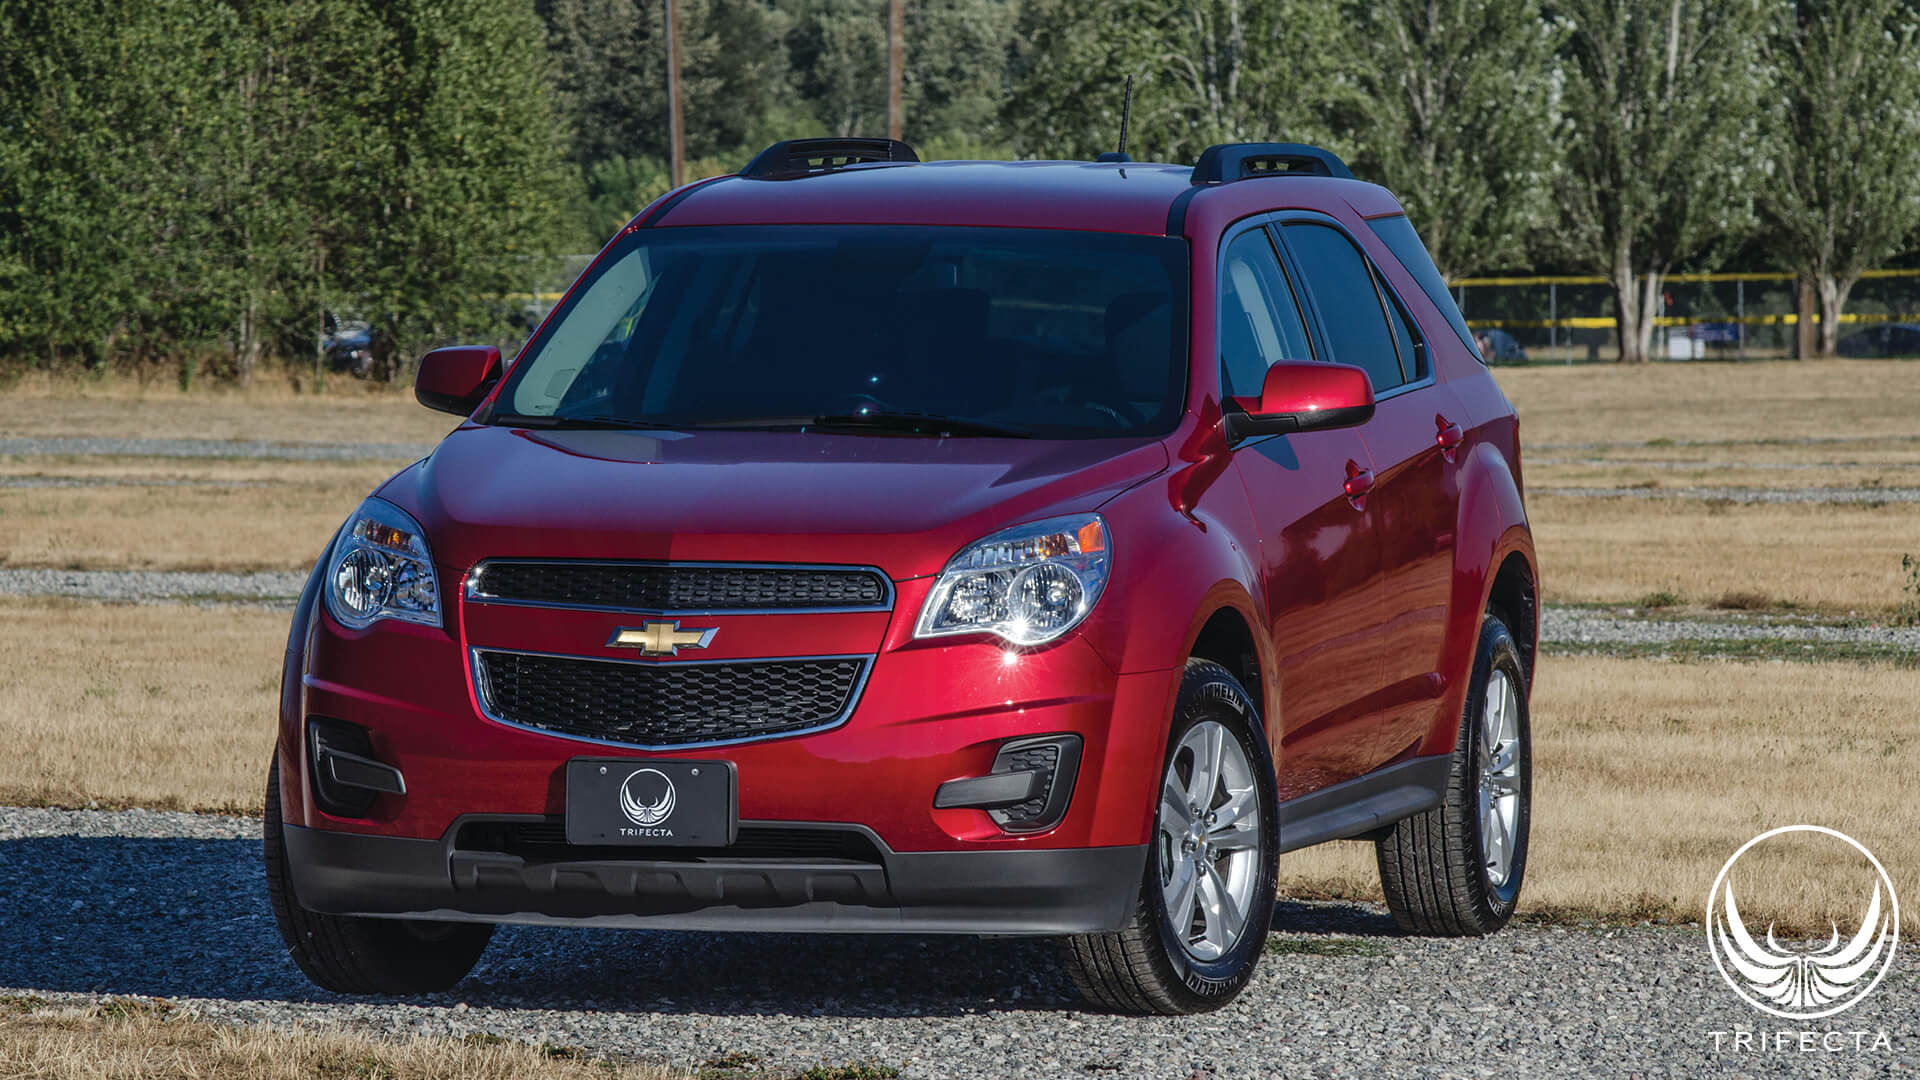 Product Review: 2012--2017 Chevrolet Equinox - 2.4L - Advantage